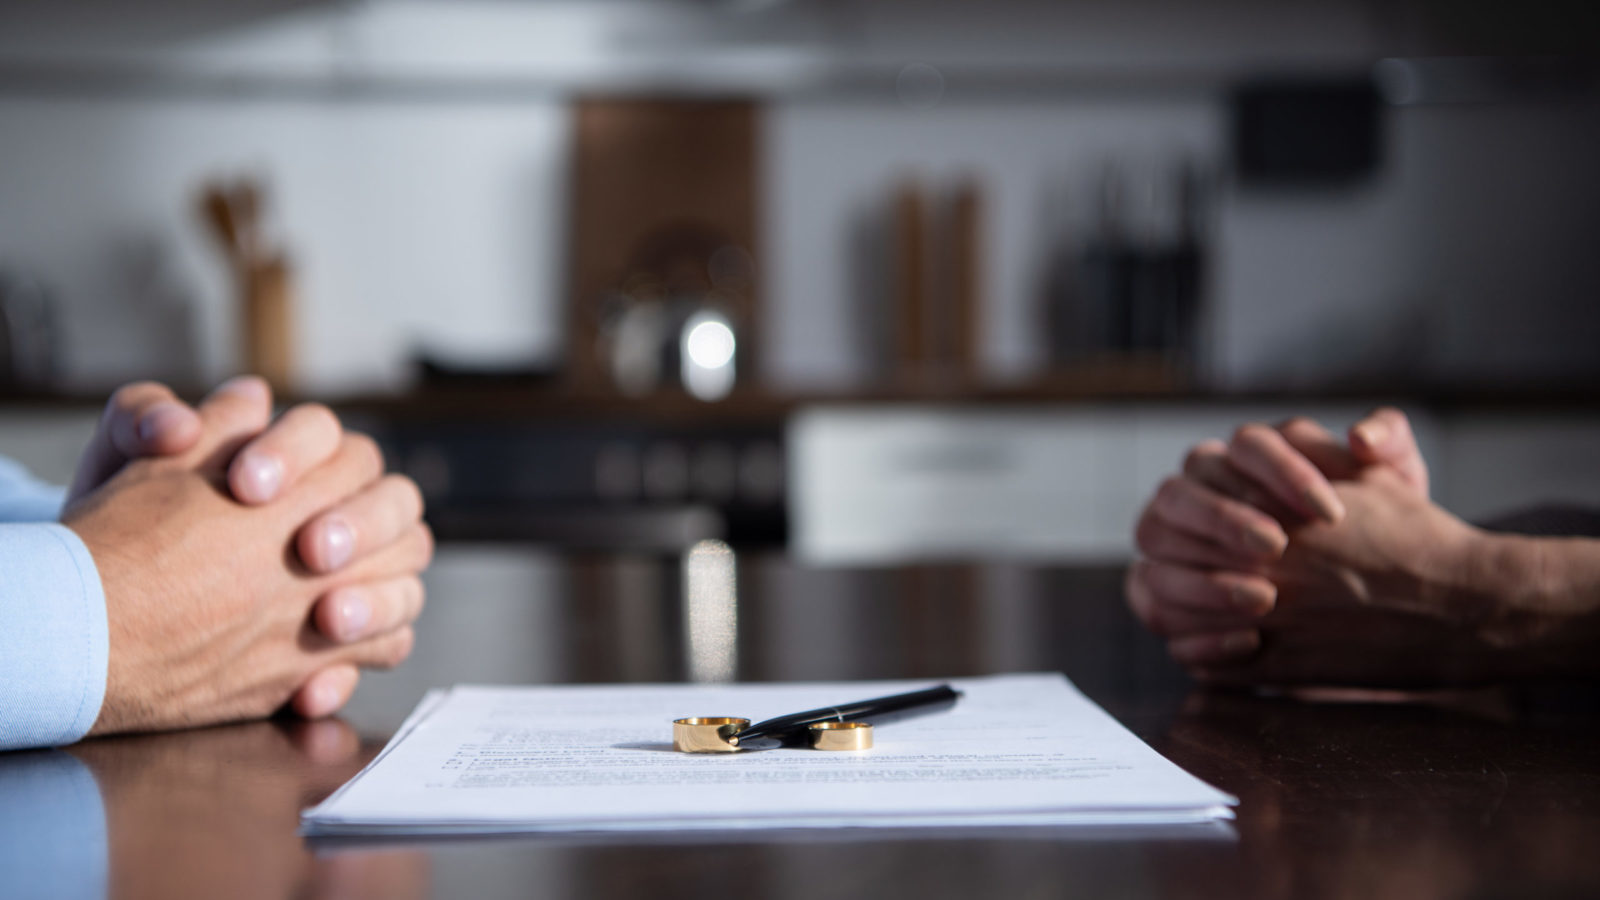 Partial view of couple sitting at table with clenched hands near divorce documents